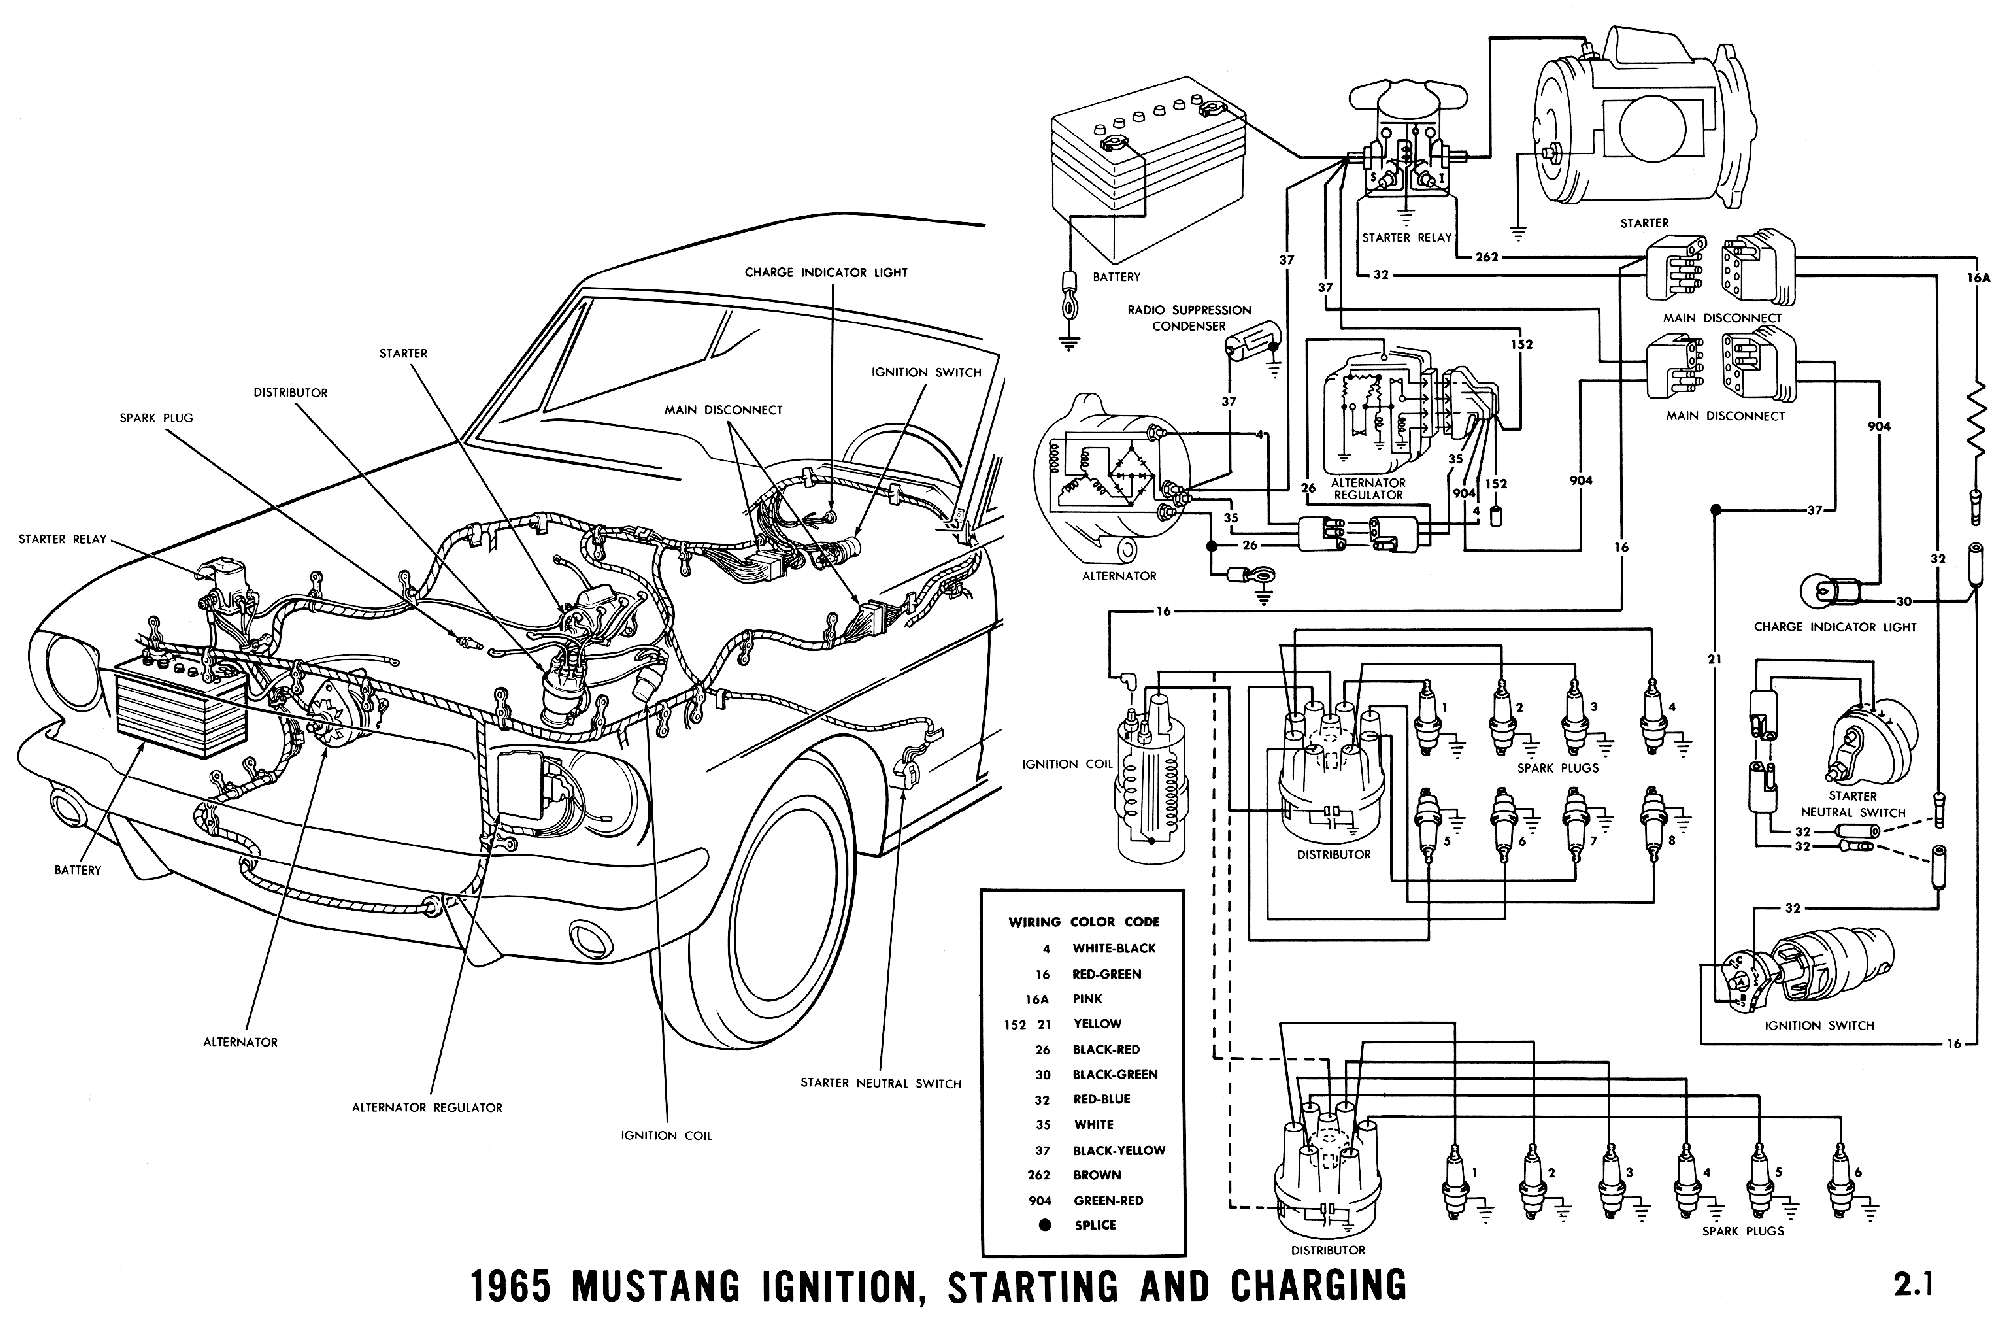 Ford Mustang Wiring Diagram Data Automotive Ignition 1965 Diagrams Average Joe Restoration Fuel Tanks 1965c